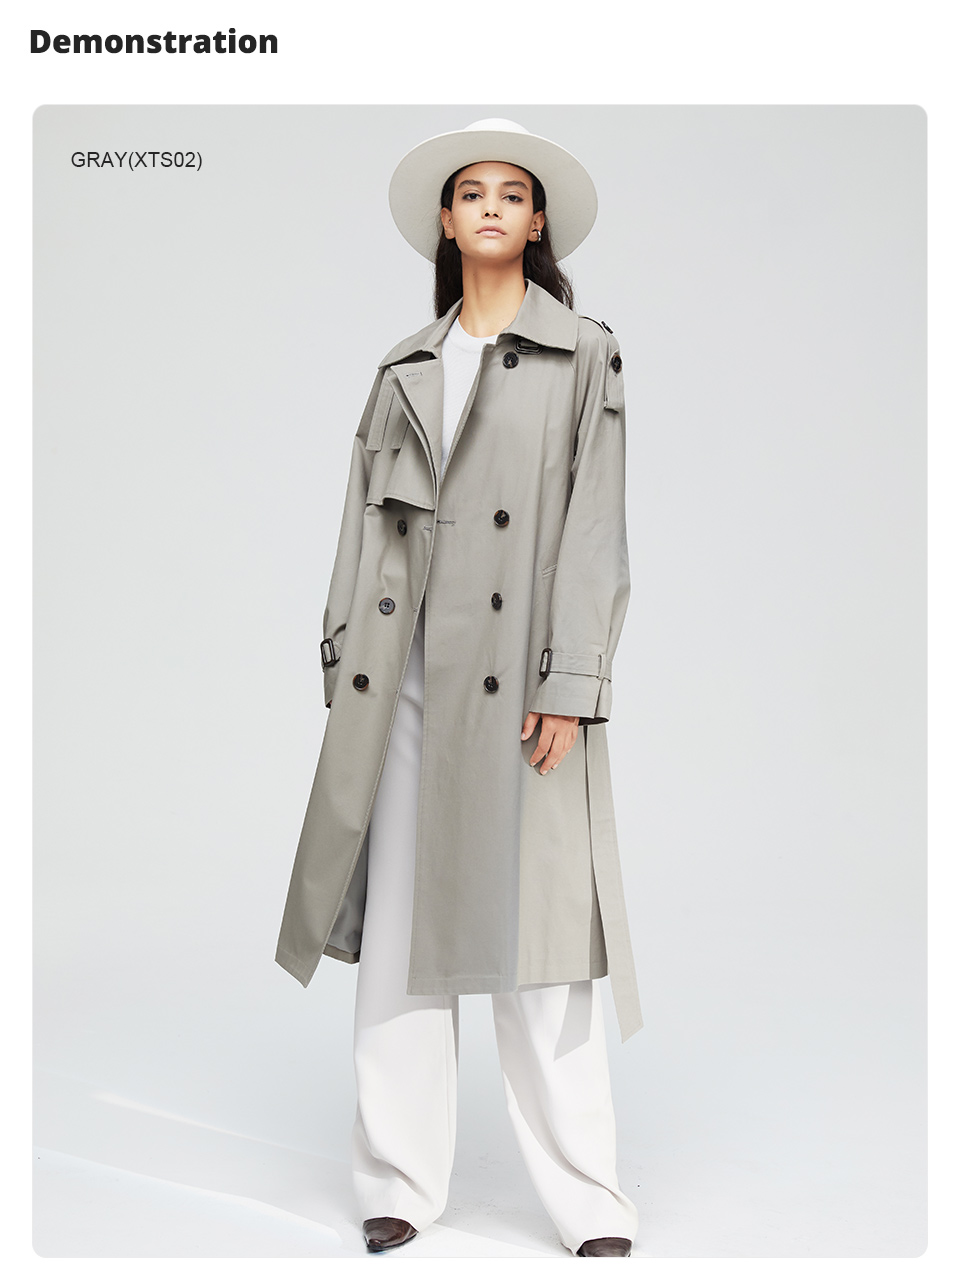 JAZZEVAR 19 New arrival autumn top trench coat women double breasted long outerwear for lady high quality overcoat women 9003 7